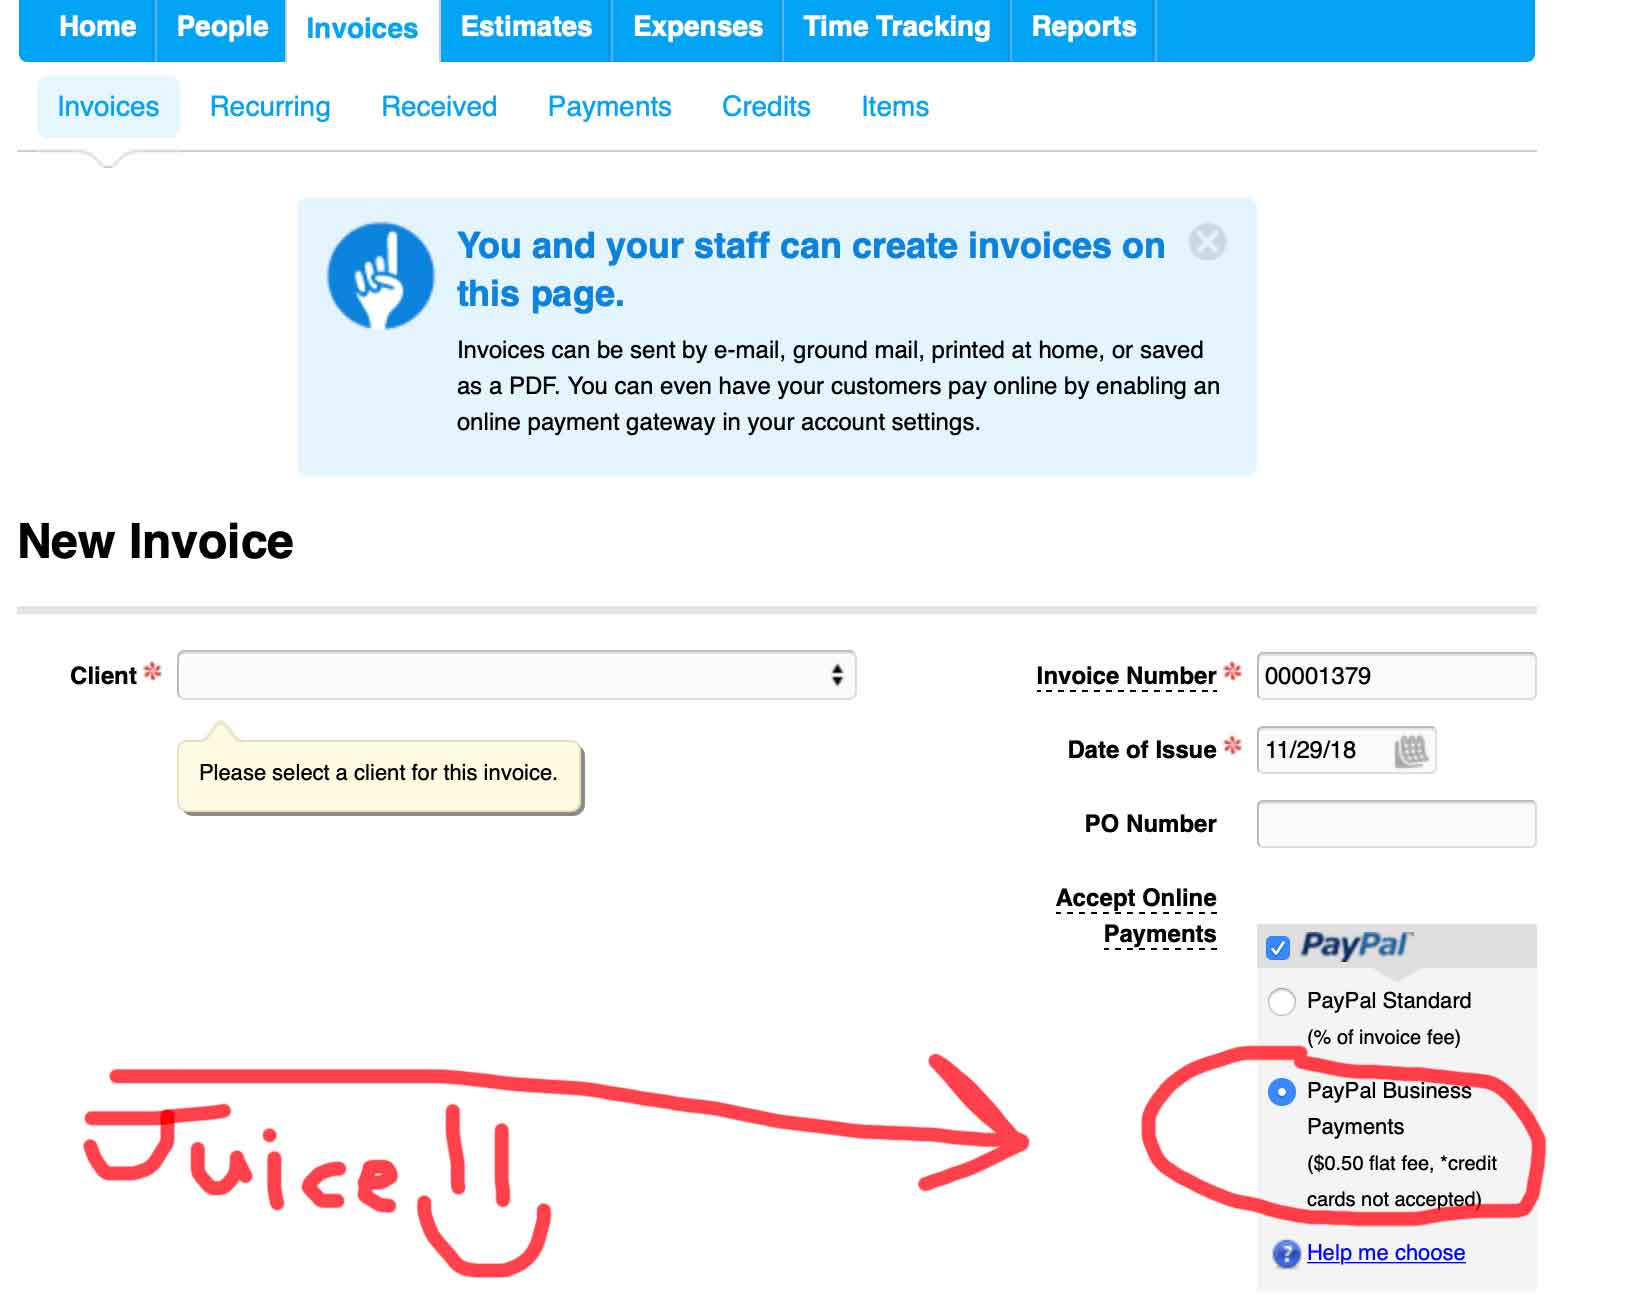 Service Clientèle Paypal How To Save Money On Paypal Transaction Fees For Small Business